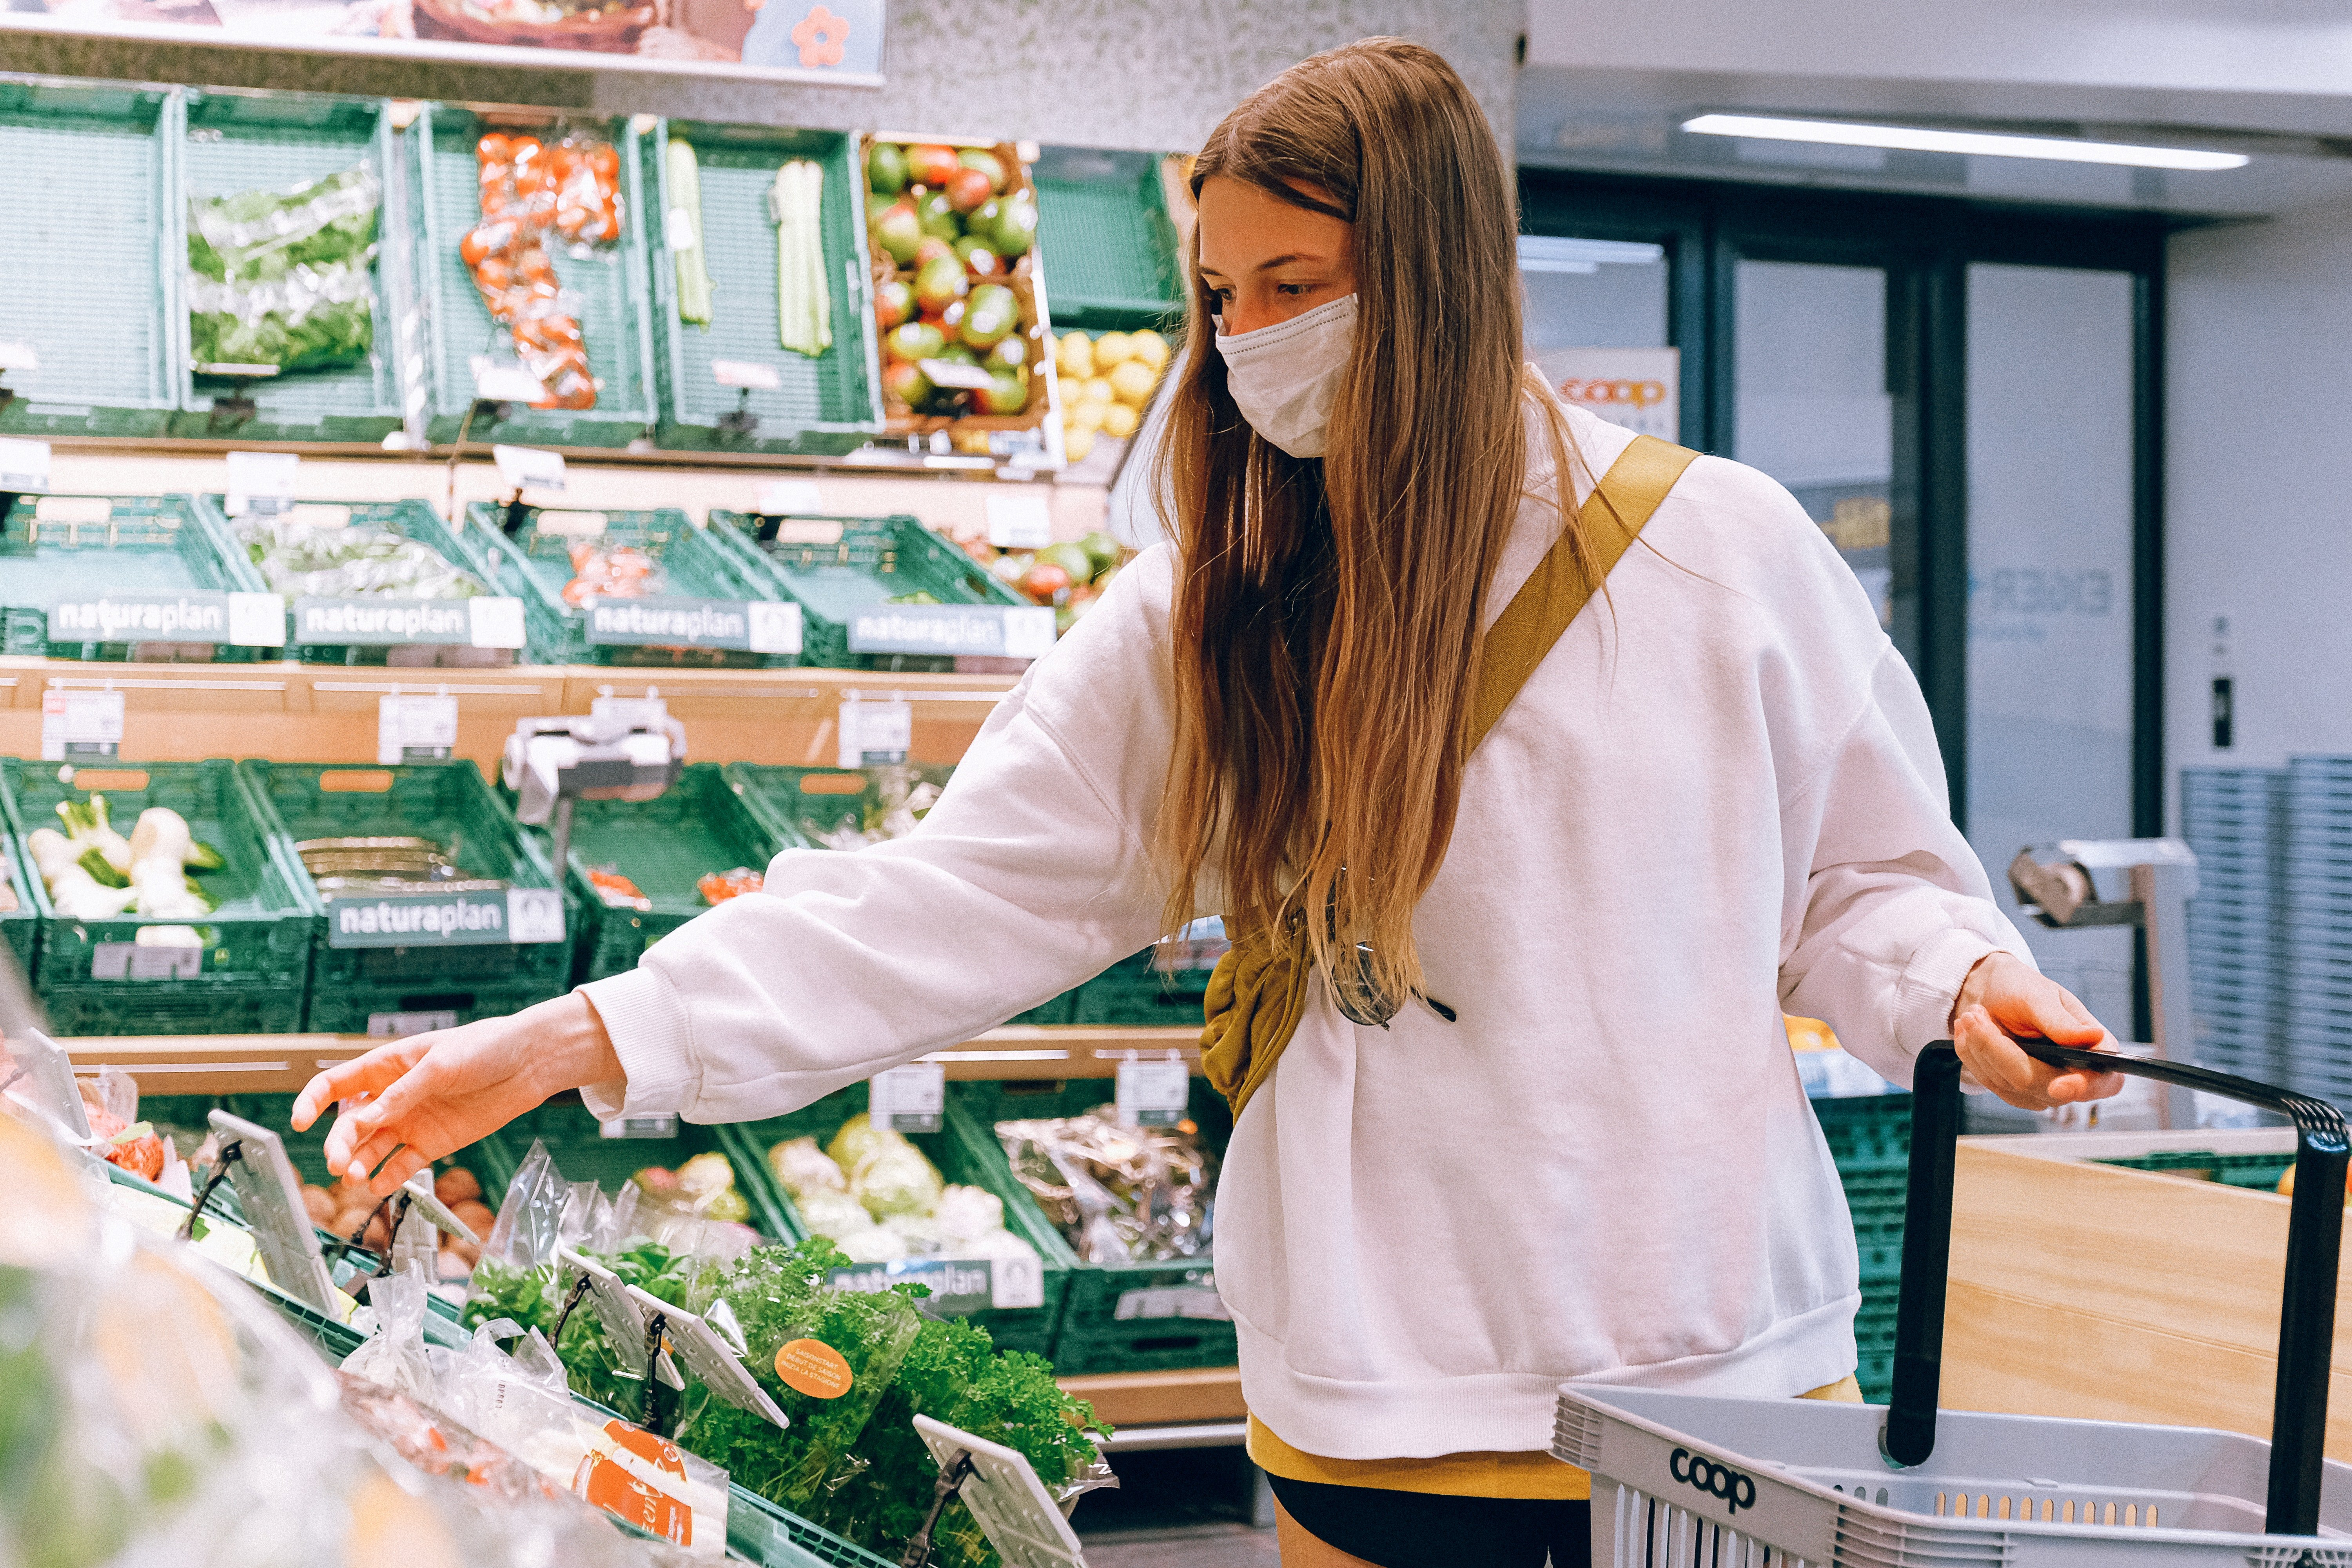 Image of a woman shopping while wearing a facemask | Source: Pexels/ Anna Shvets